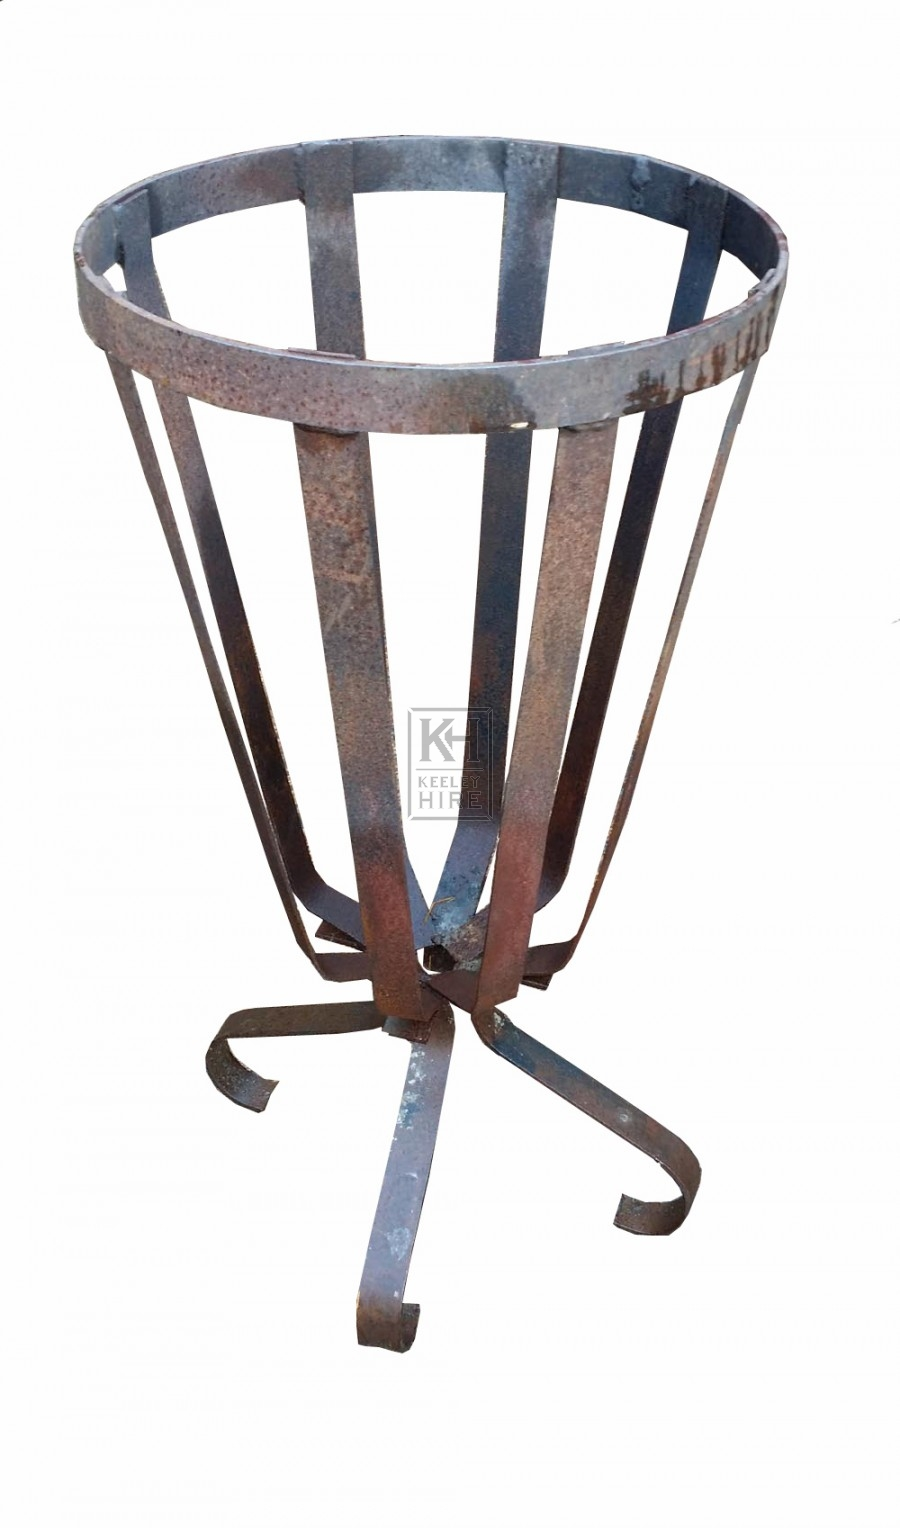 Shaped iron brazier on leg